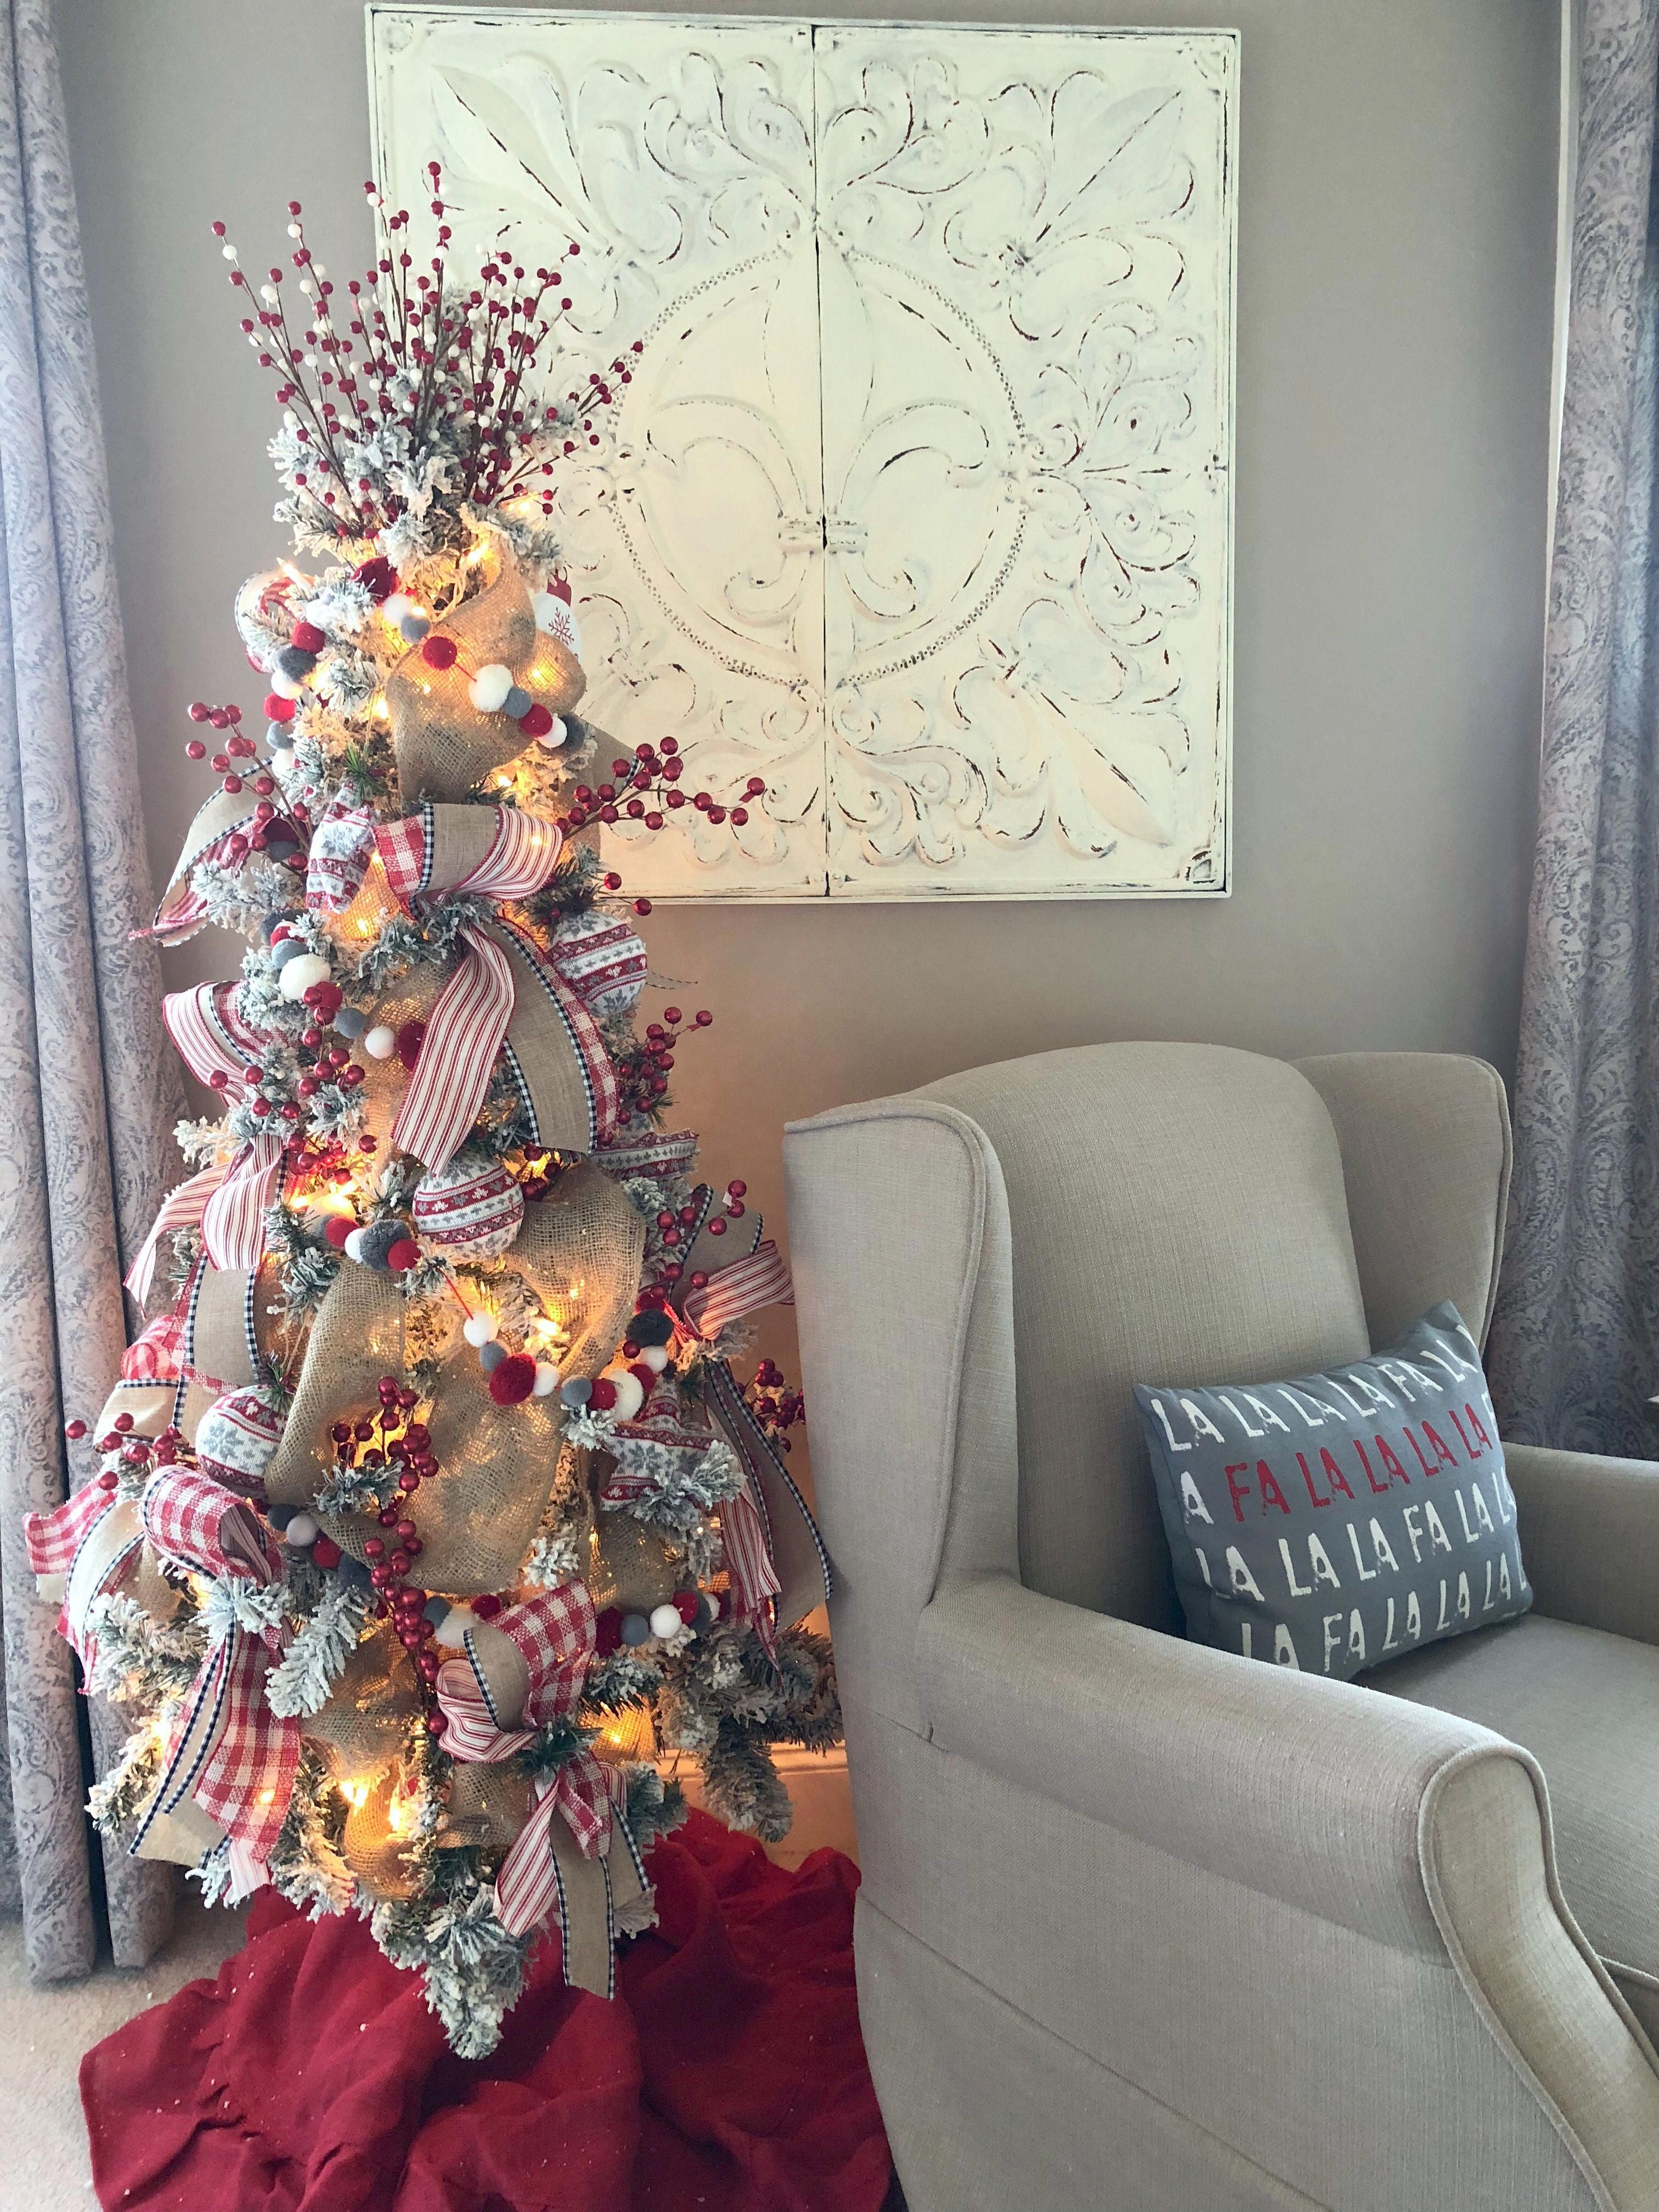 4 ideas on how to add Christmas decor to your master